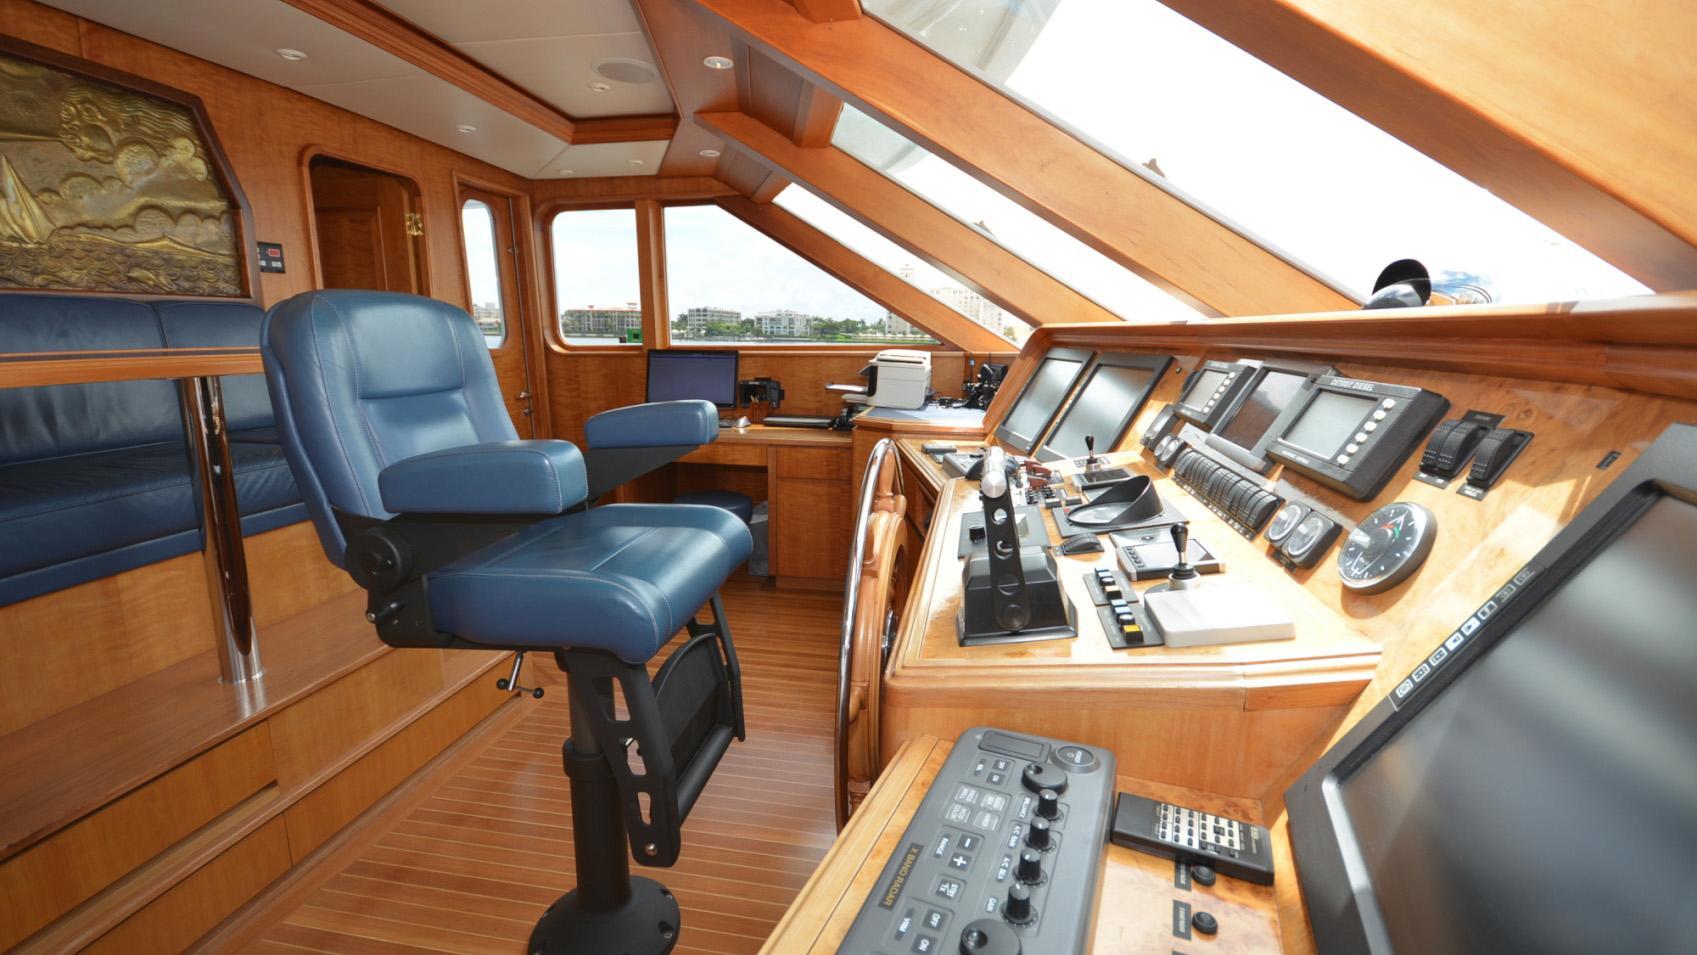 Ar De motor yacht for sale helm